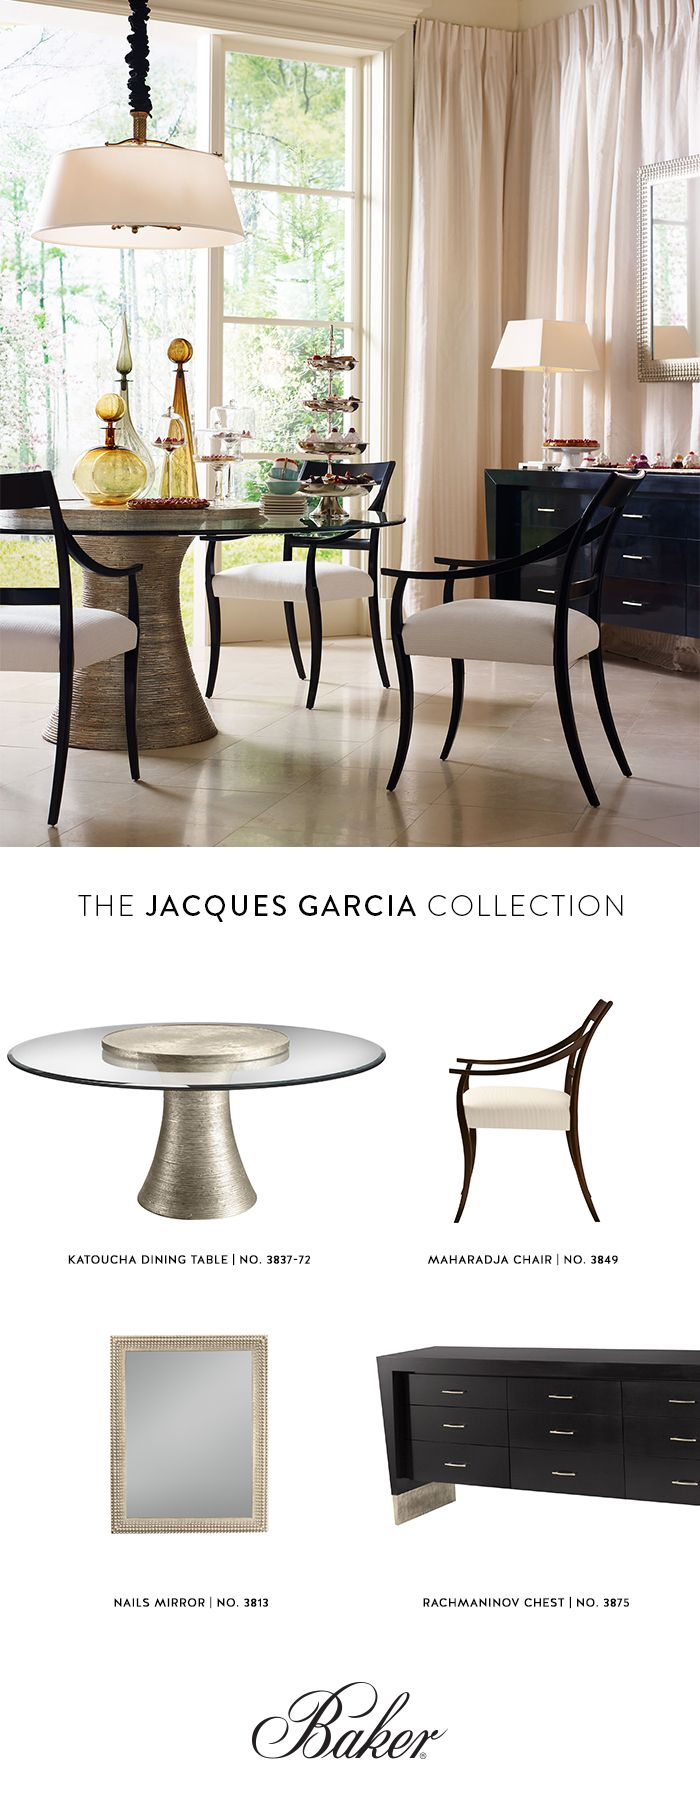 17 best images about the jacques garcia collection on